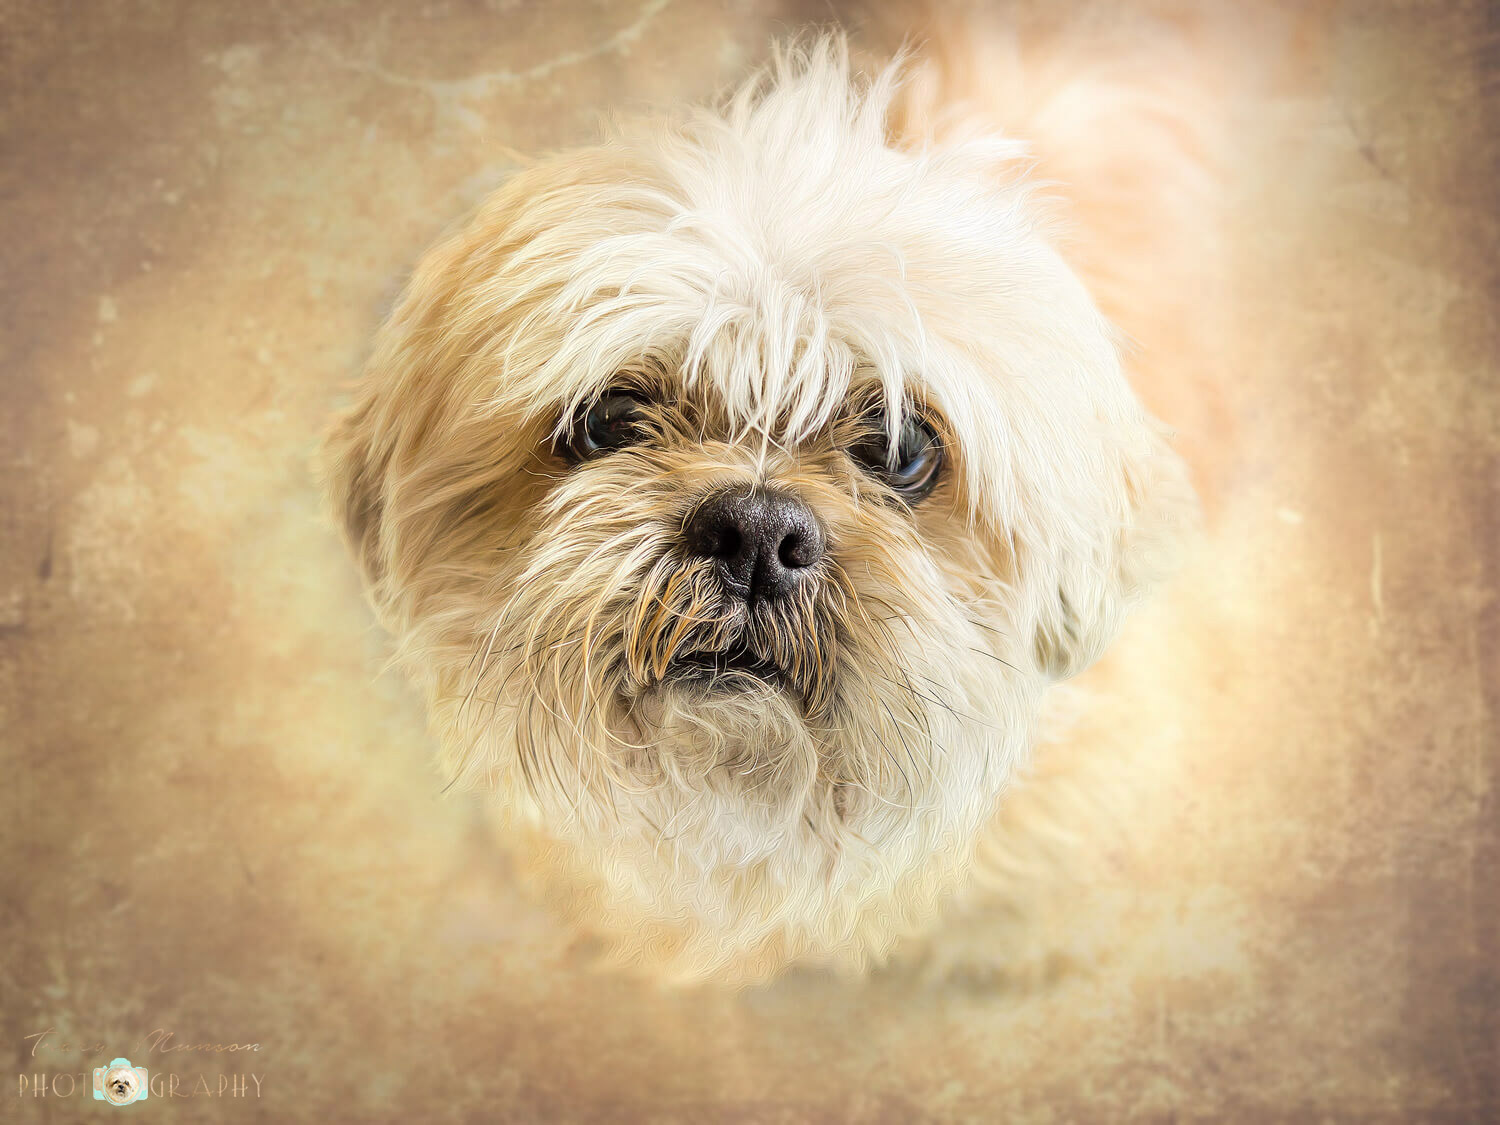 """Take Me Home"", showing a scruffy rescue dog looking imploringly at the camera is one of my images that was selected for the PPOC Atlantic Exhibition at the Shediac Multipurpose Centre."